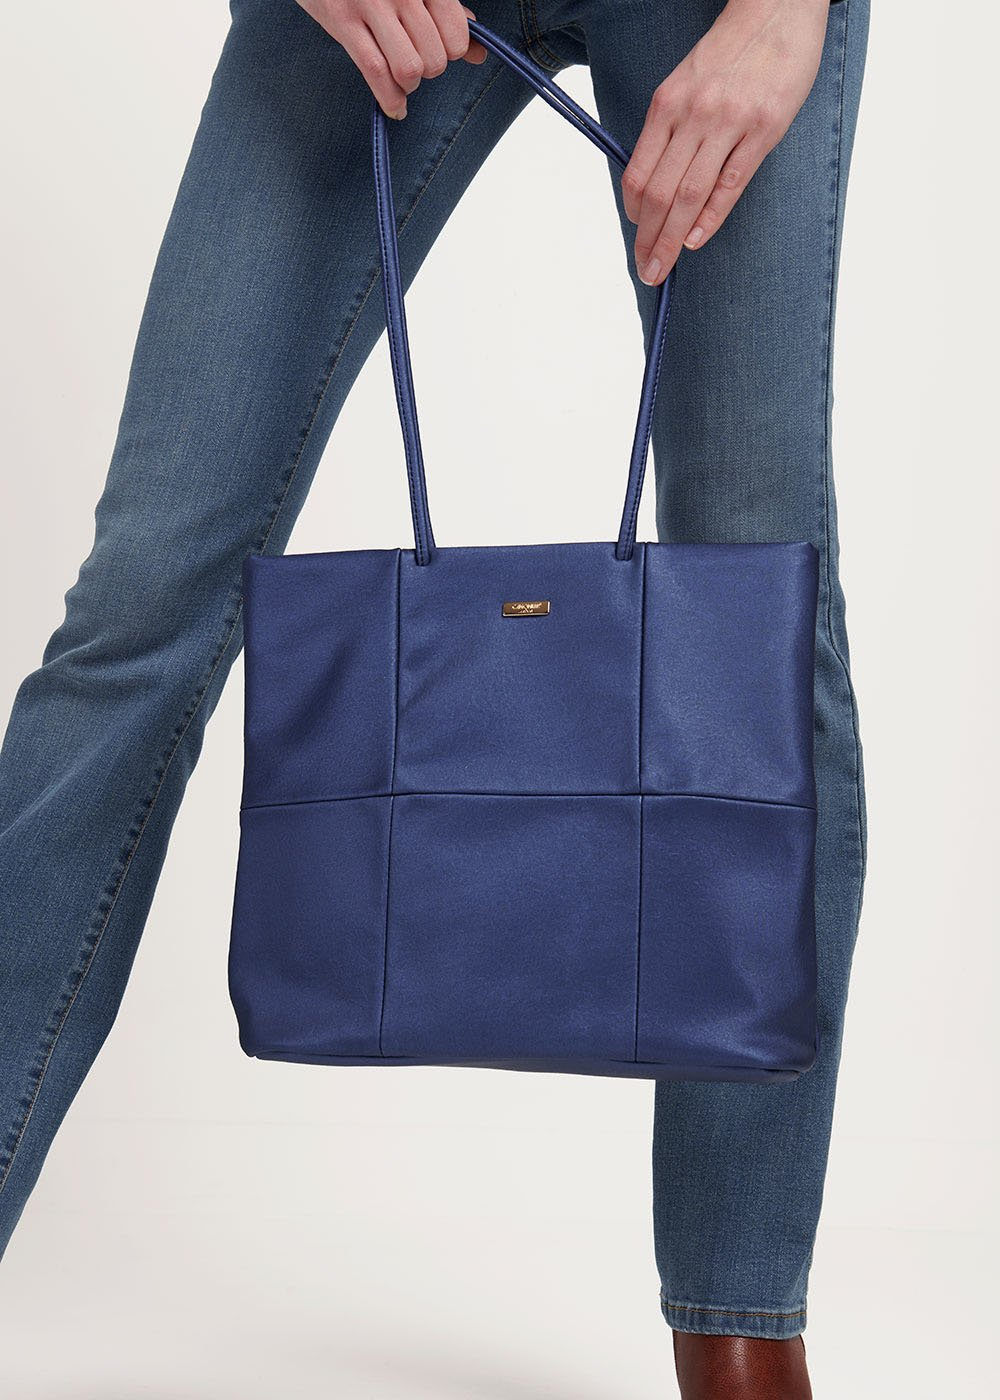 Badel shopping bag with long handle - Blue - Woman